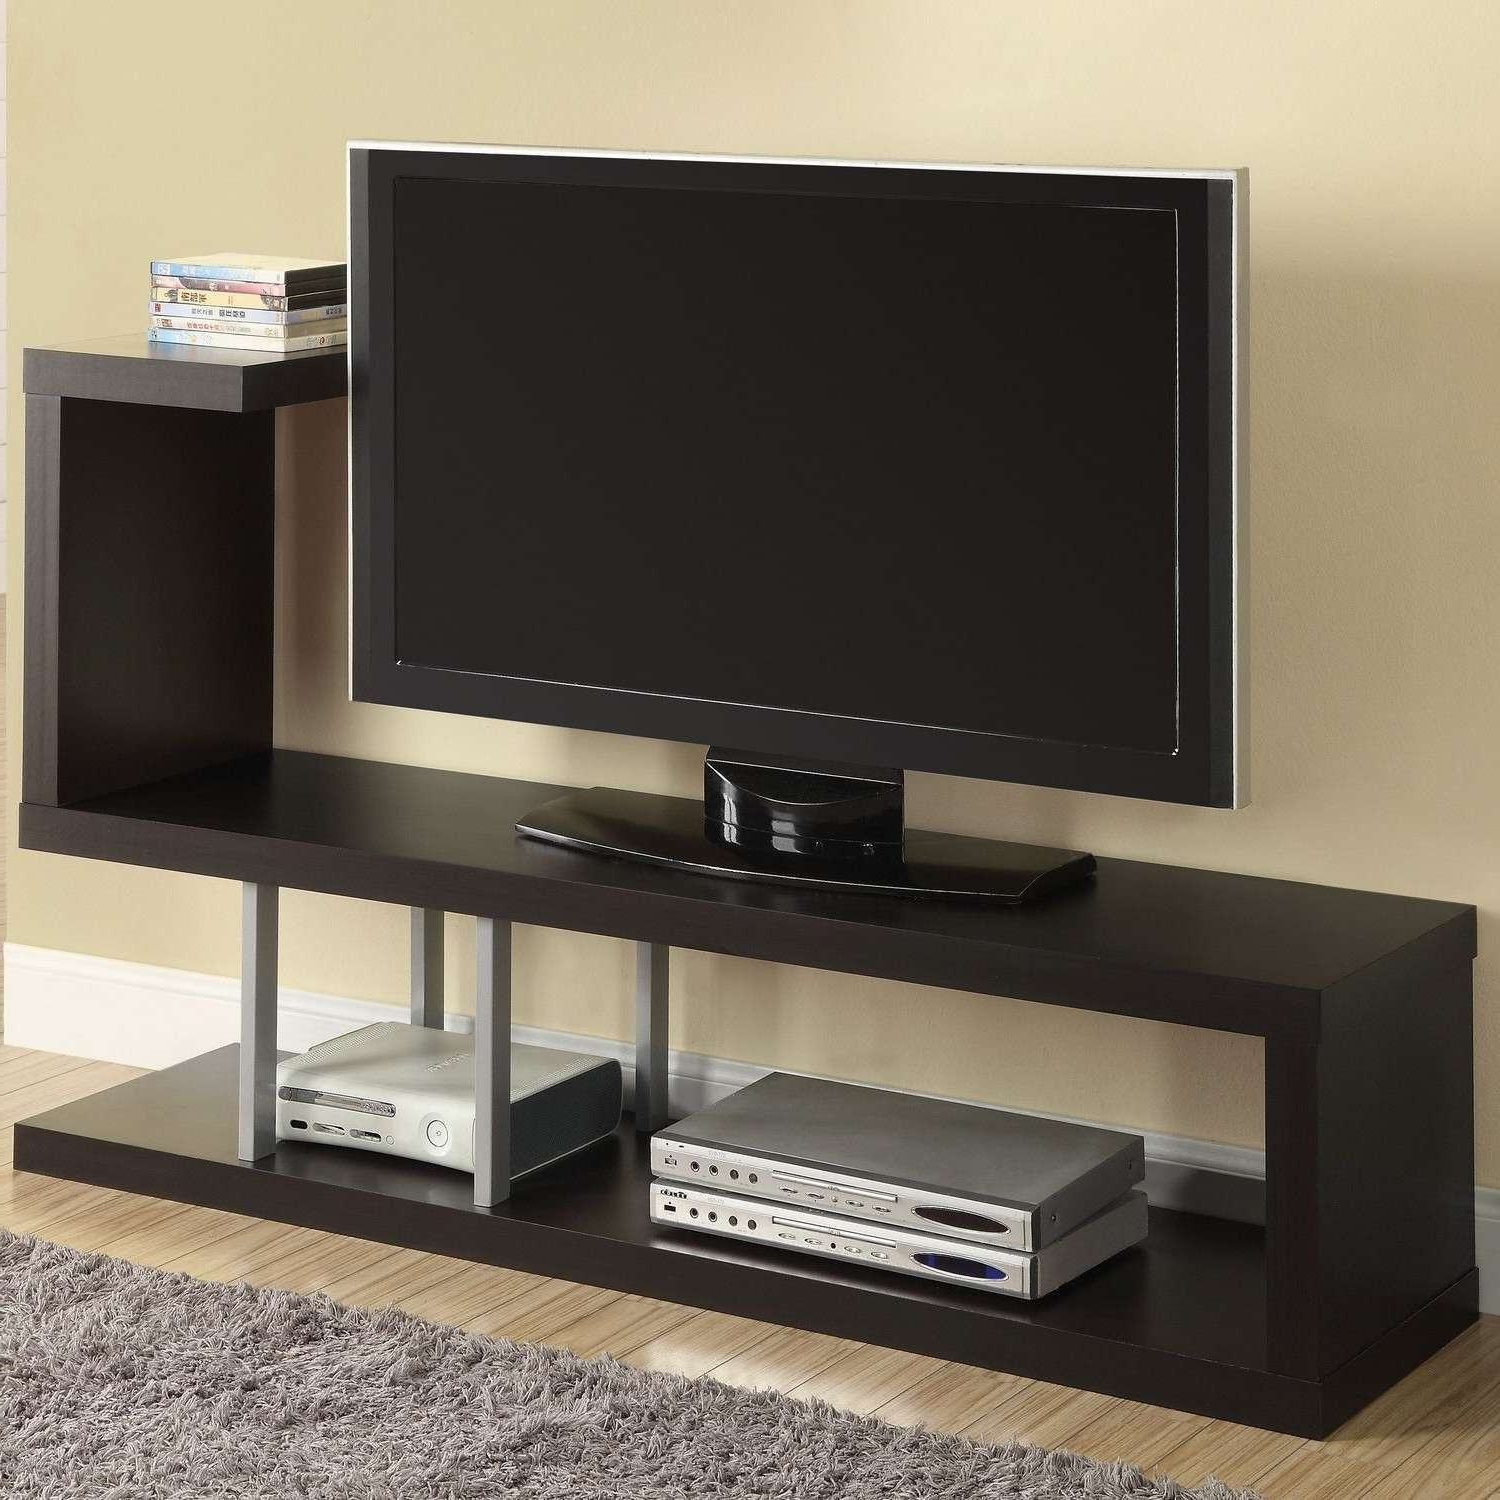 Stunning 21 Cool Tv Stands You Ll Love ♥ Funky Tv Stands For Newest Funky Tv Stands (Gallery 5 of 20)